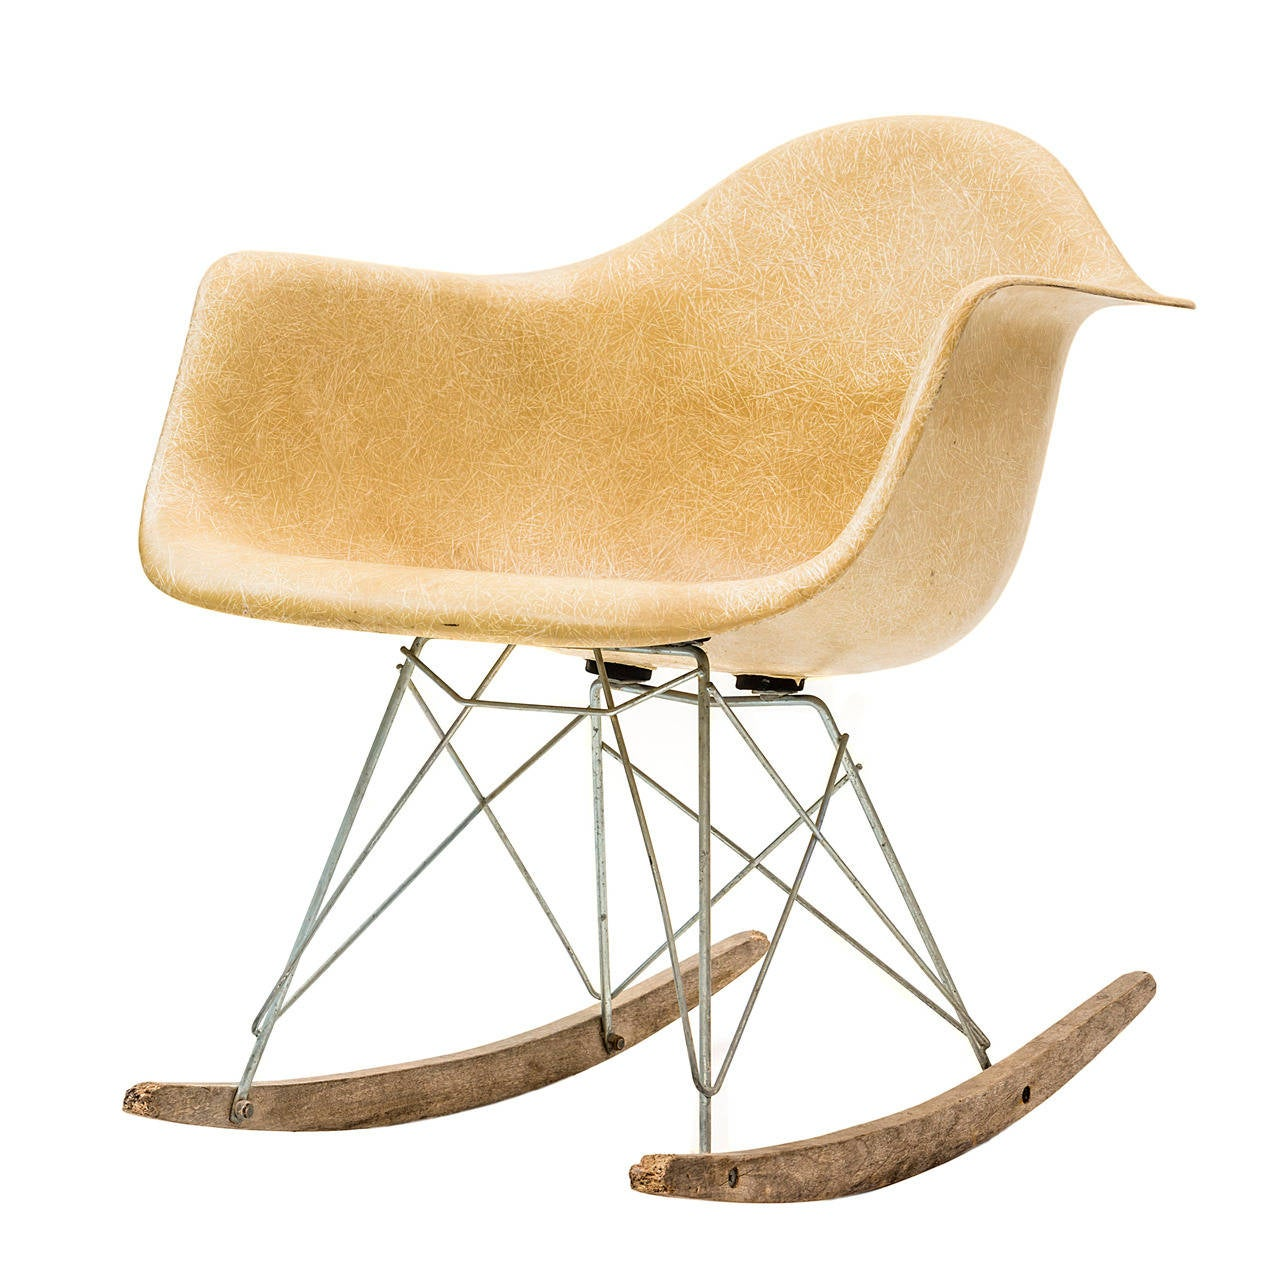 Rar rocking chair by charles and ray eames at 1stdibs for Fauteuil eames rocking chair